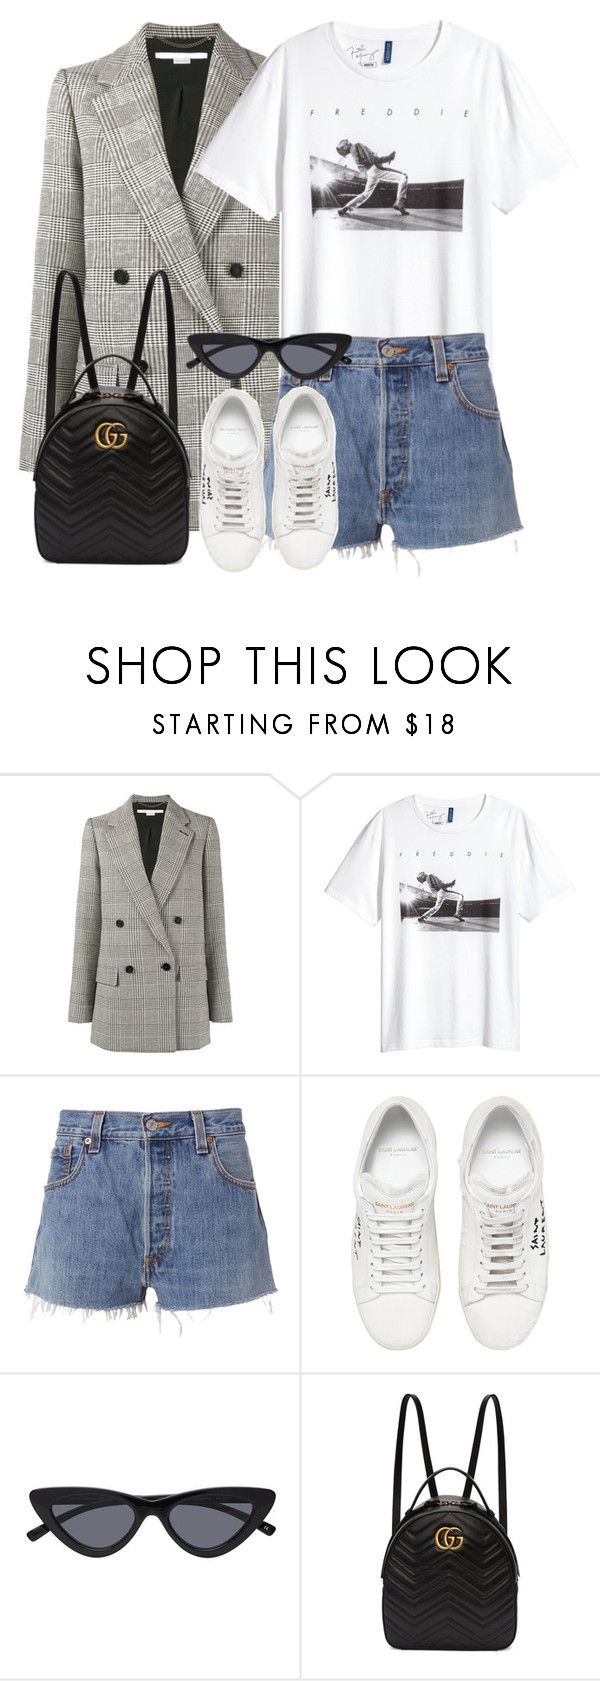 """""""Untitled #3333"""" by elenaday on Polyvore featuring STELLA McCARTNEY, H&M, RE/DONE, Yves Saint Laurent and Gucci"""